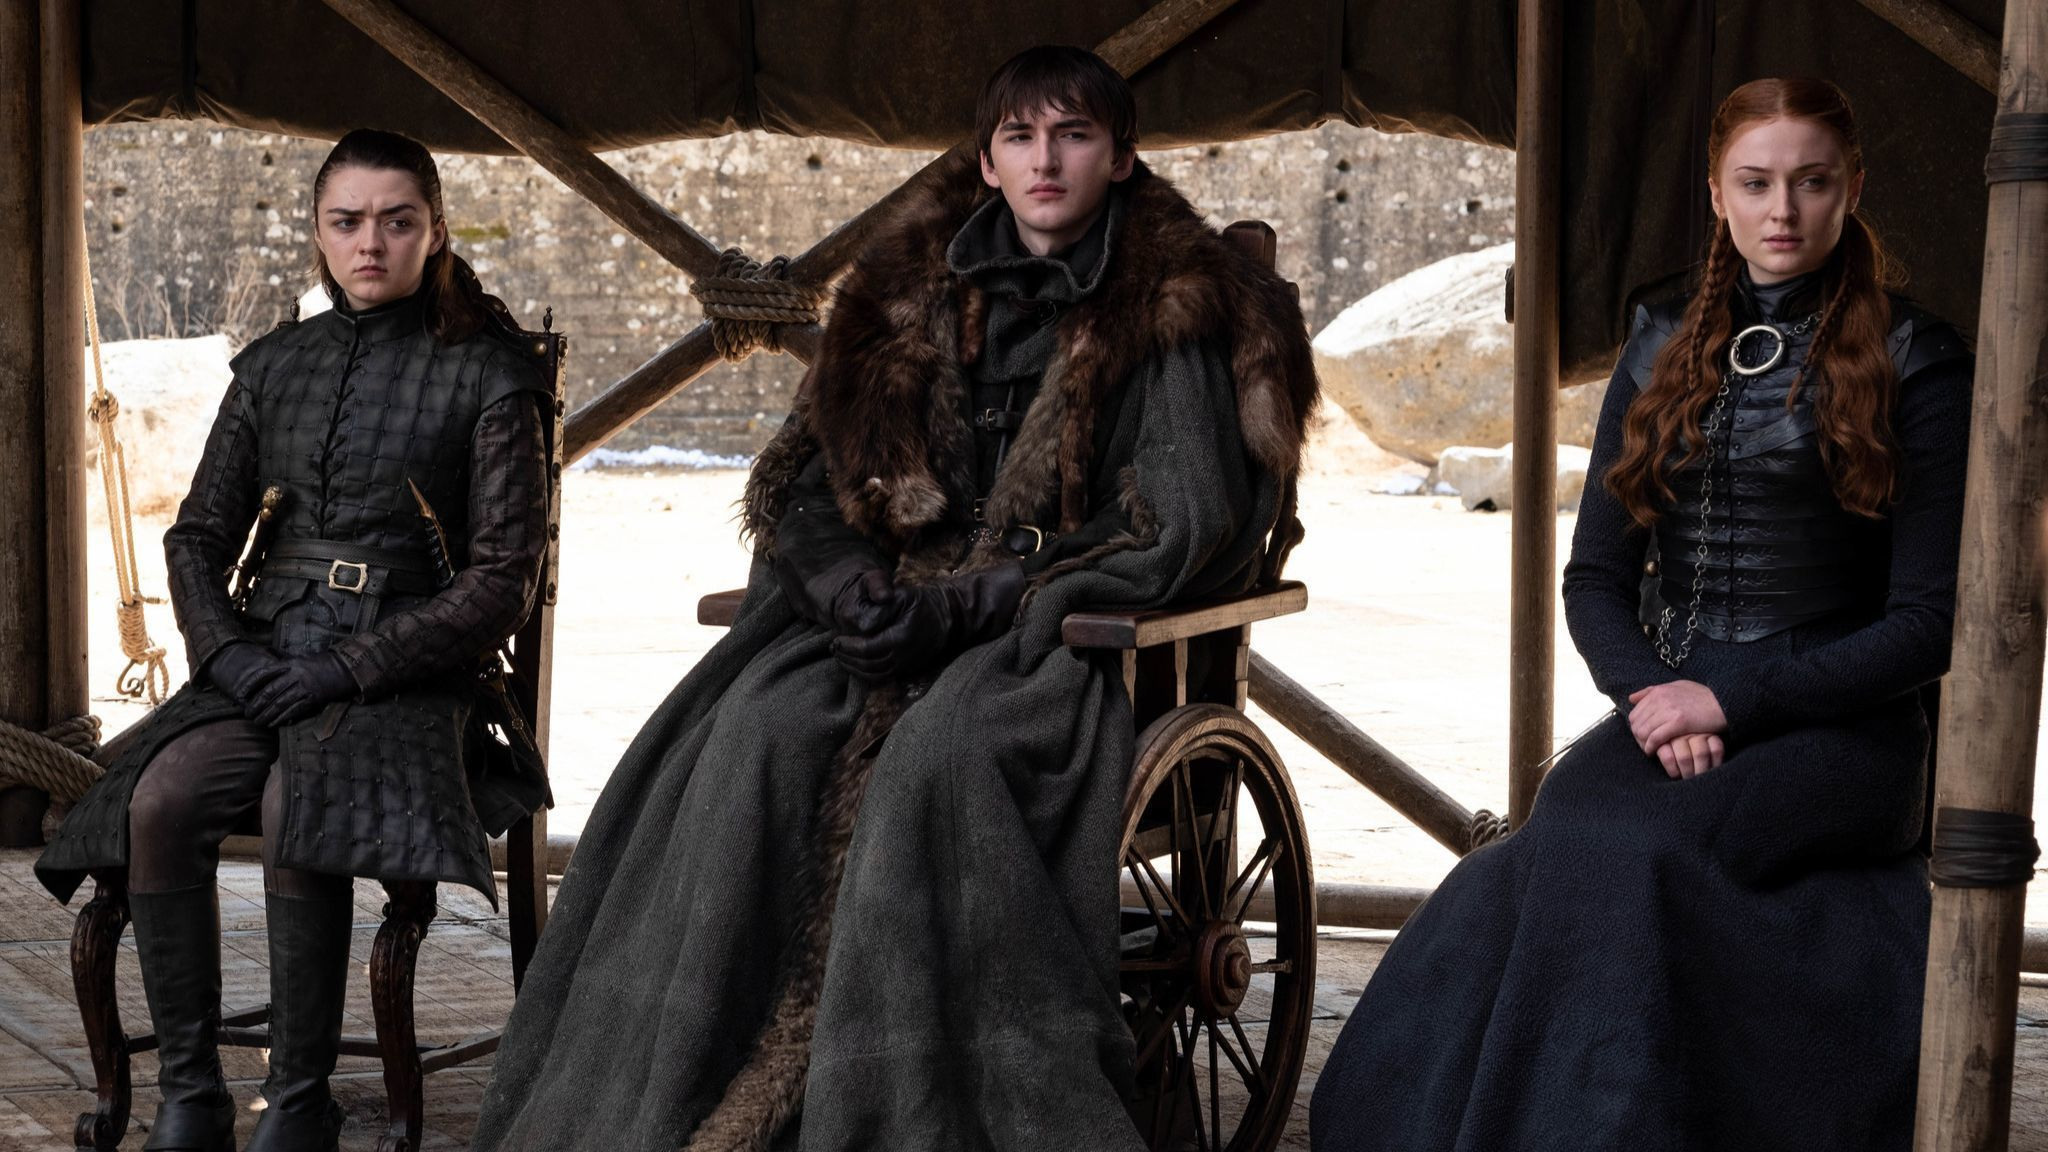 The 'Game of Thrones' finale didn't answer all of our questions: Here are 13 things still bothering us